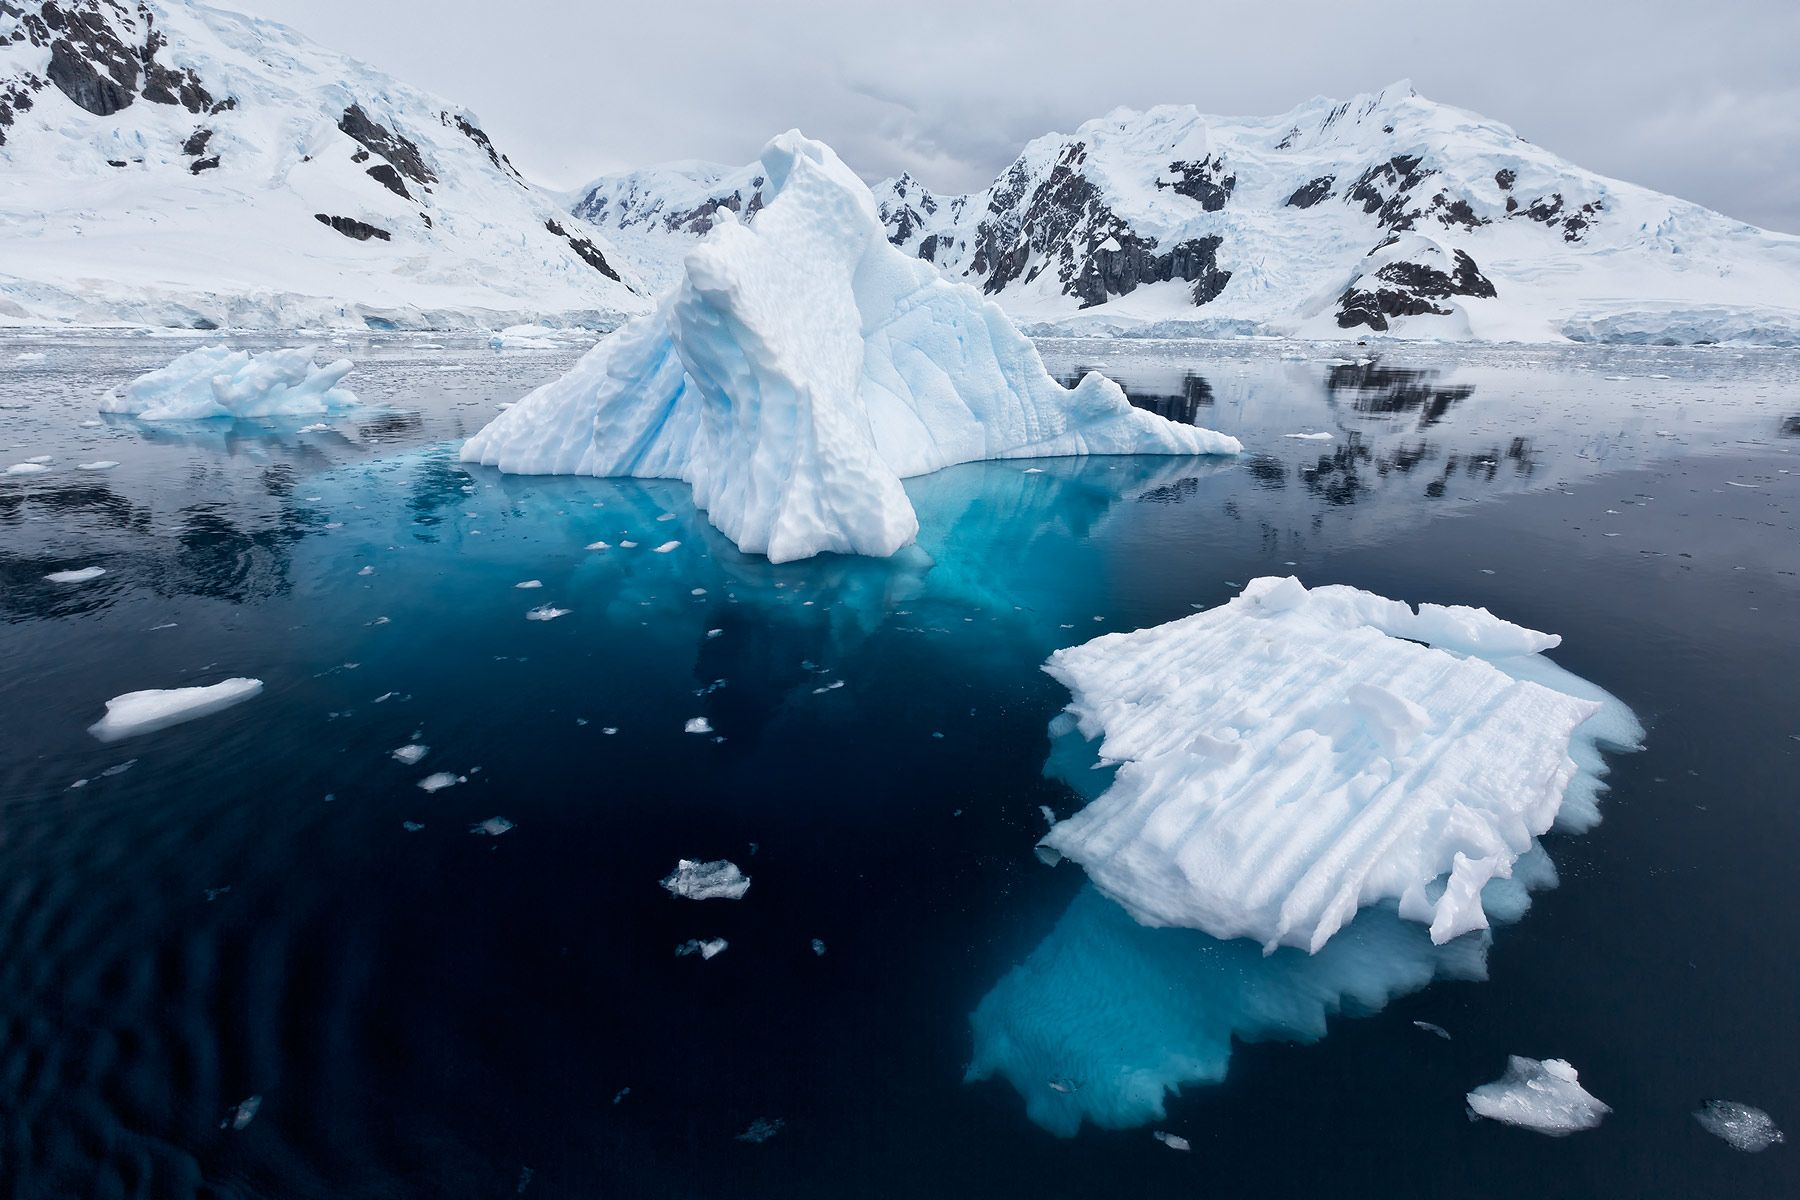 Small-ice-bergs-floating-in-Paradise-Bay_S6A9505-Paradise-Bay,-Antarctica.jpg